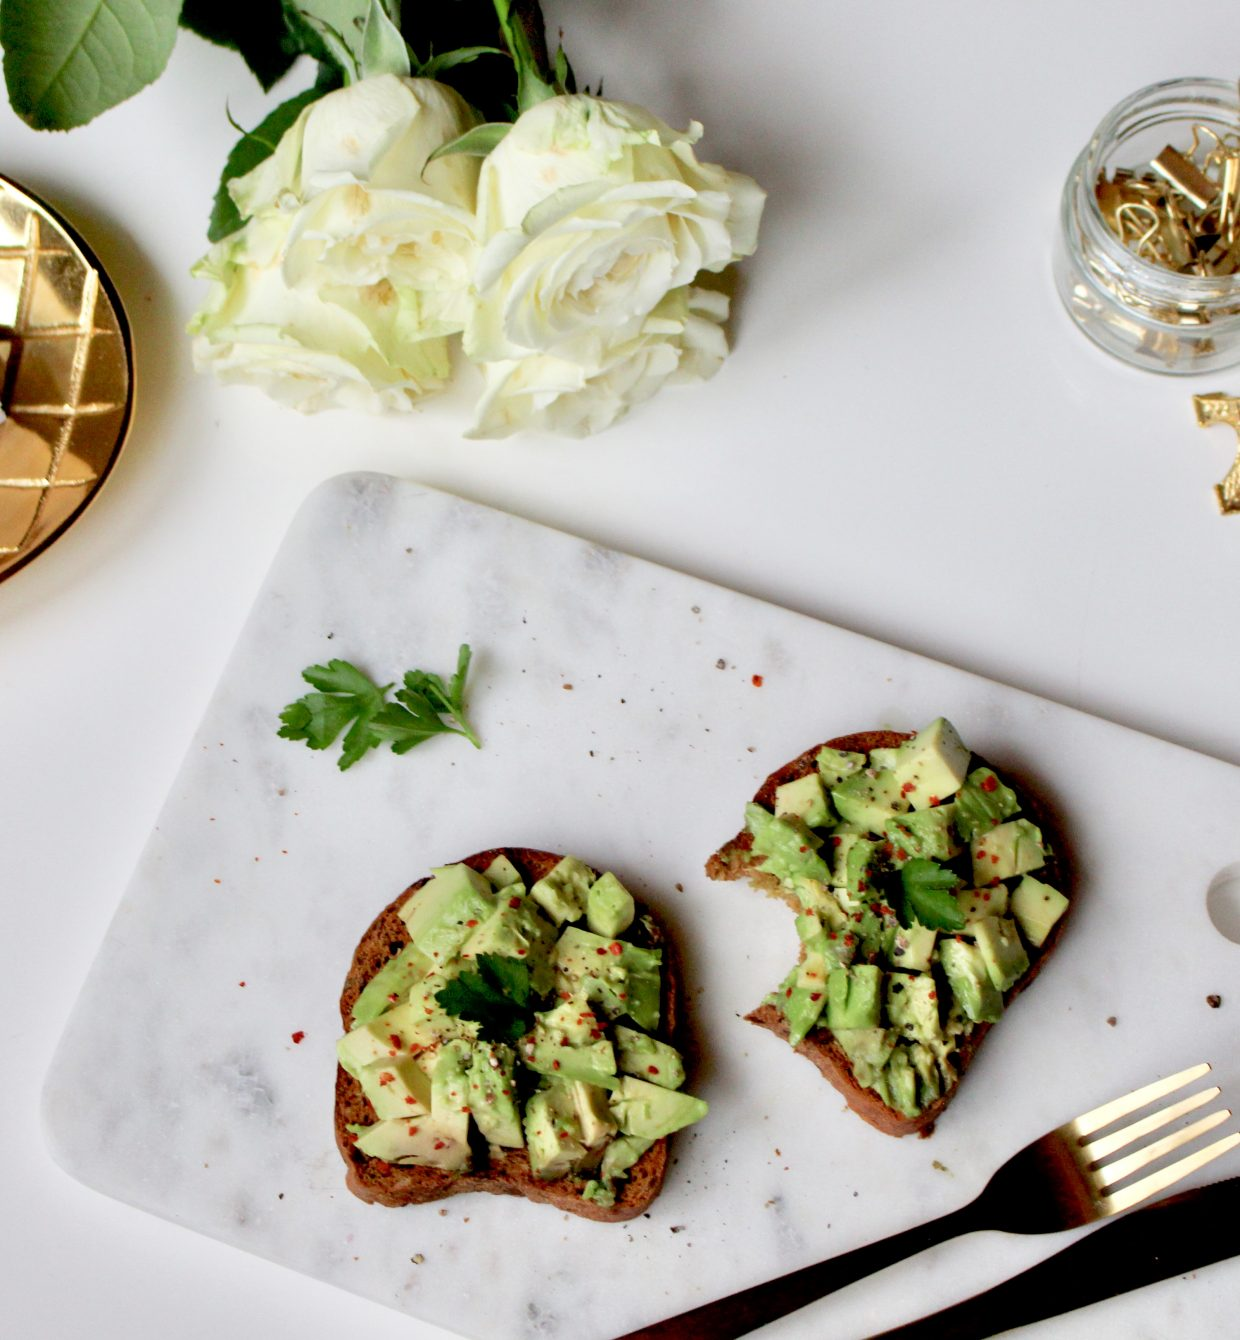 Healthy snack #Skinny avocado toast.